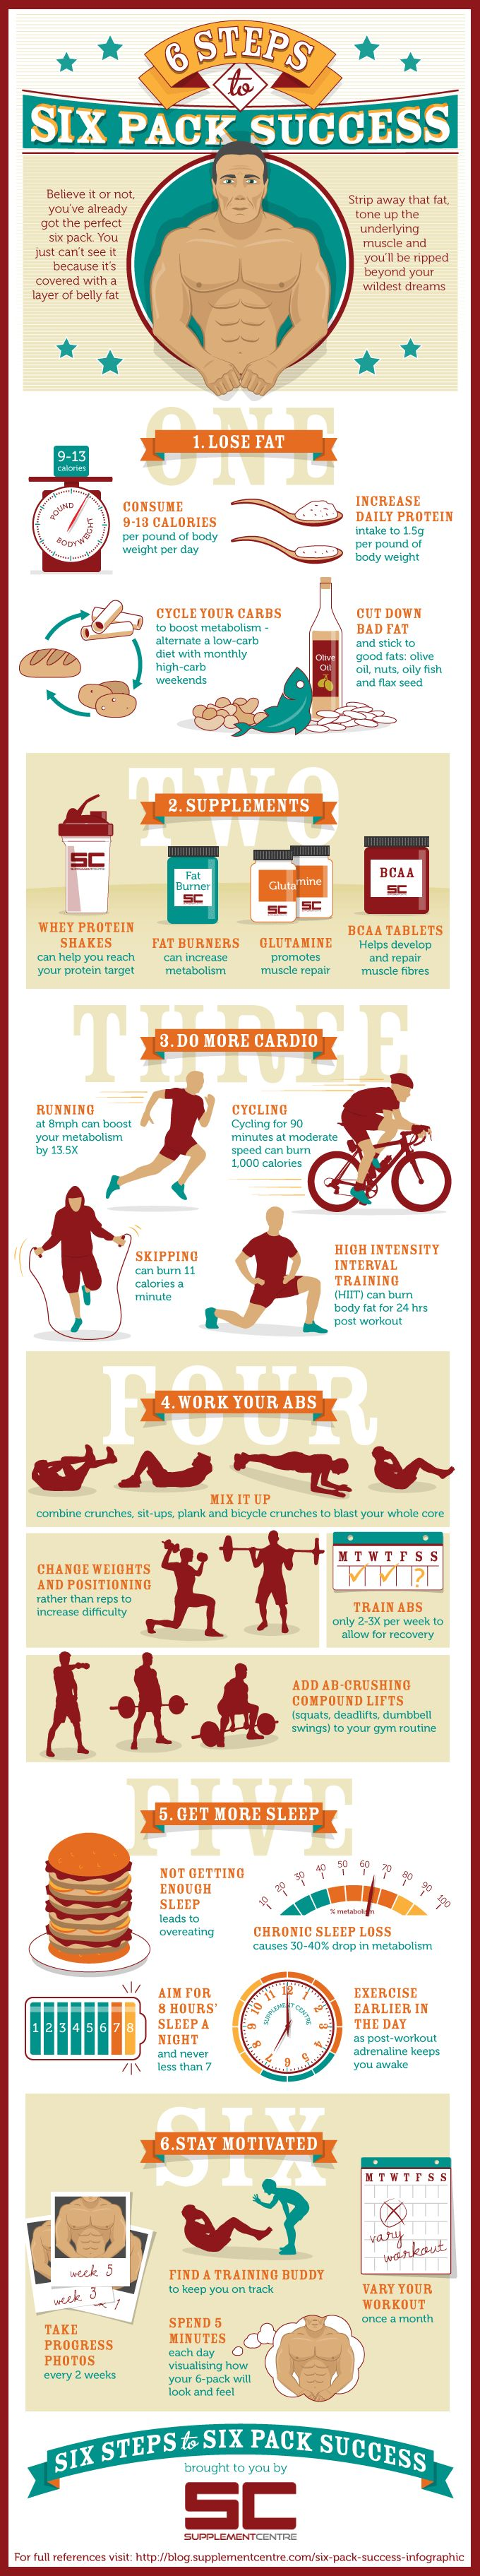 6 Steps to Six Pack Success   #infographic #Fitness #Exercise